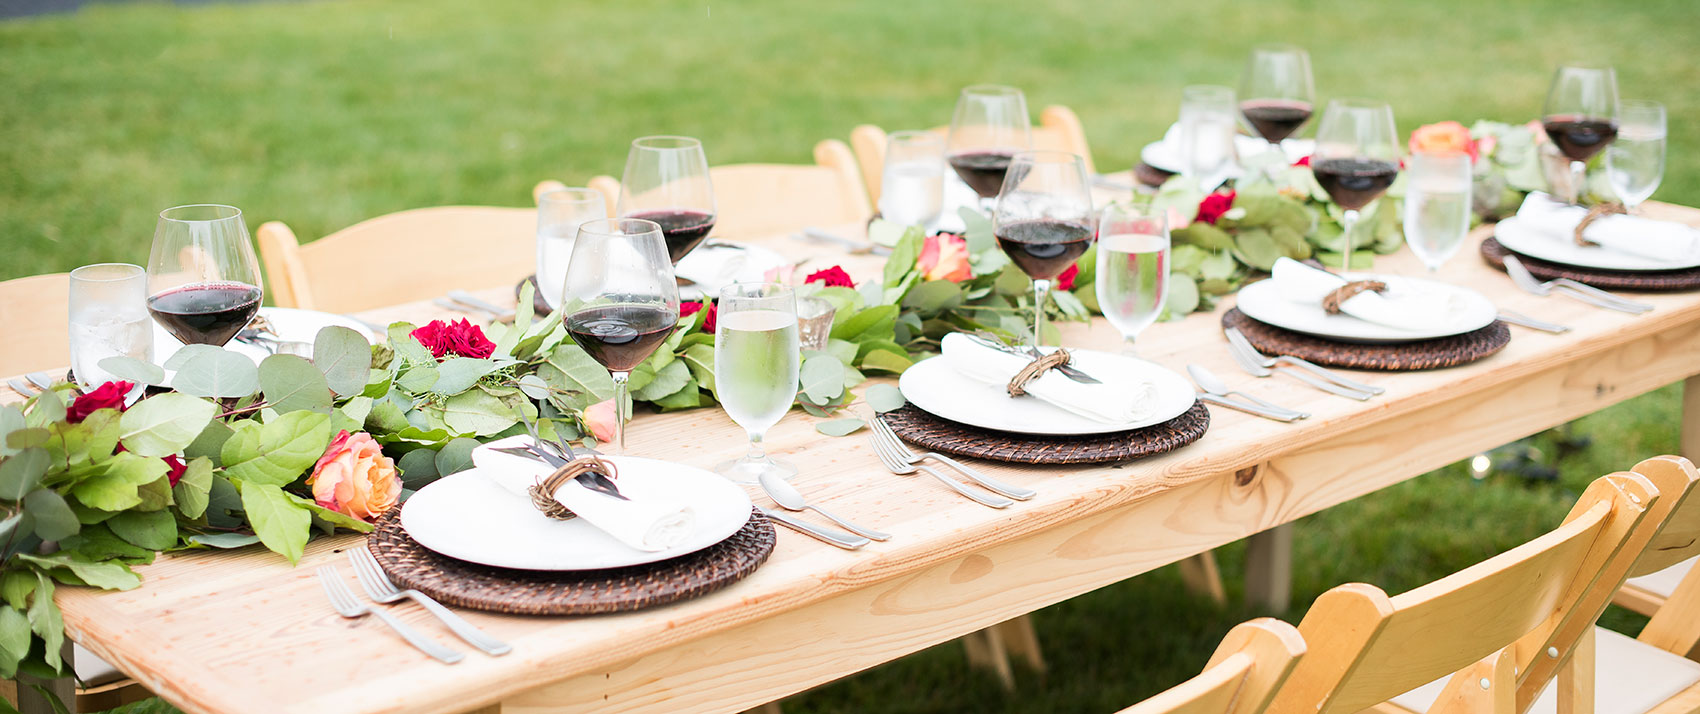 outdoor table set up